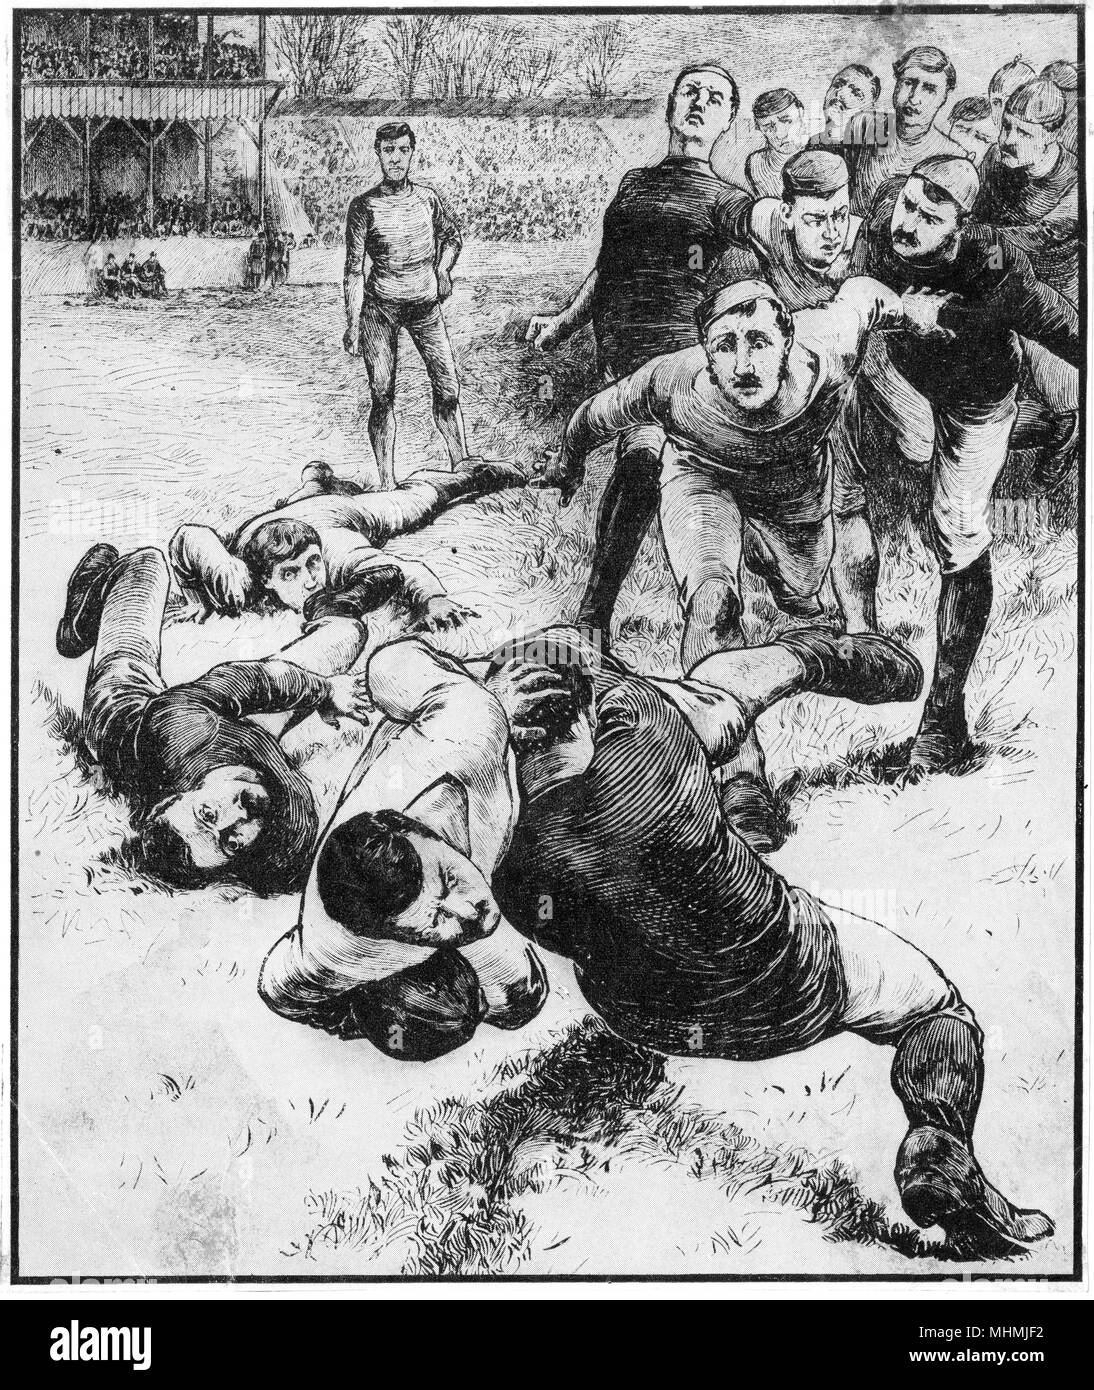 A Tackle        Date: 19th Century Stock Photo